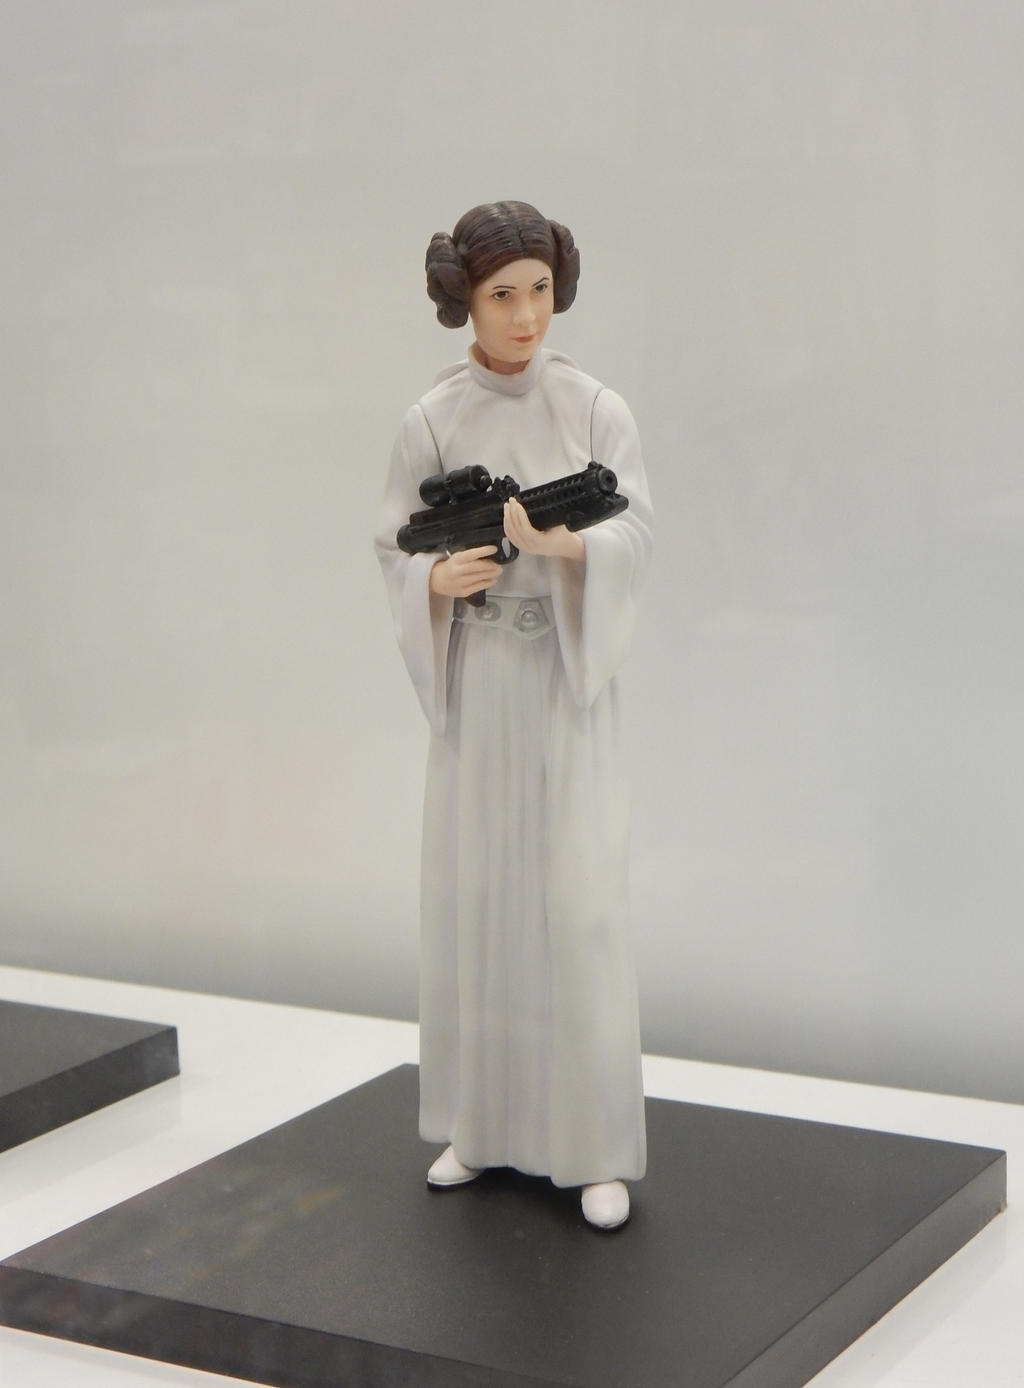 Princess Leia Figurine By Rlkitterman On Deviantart